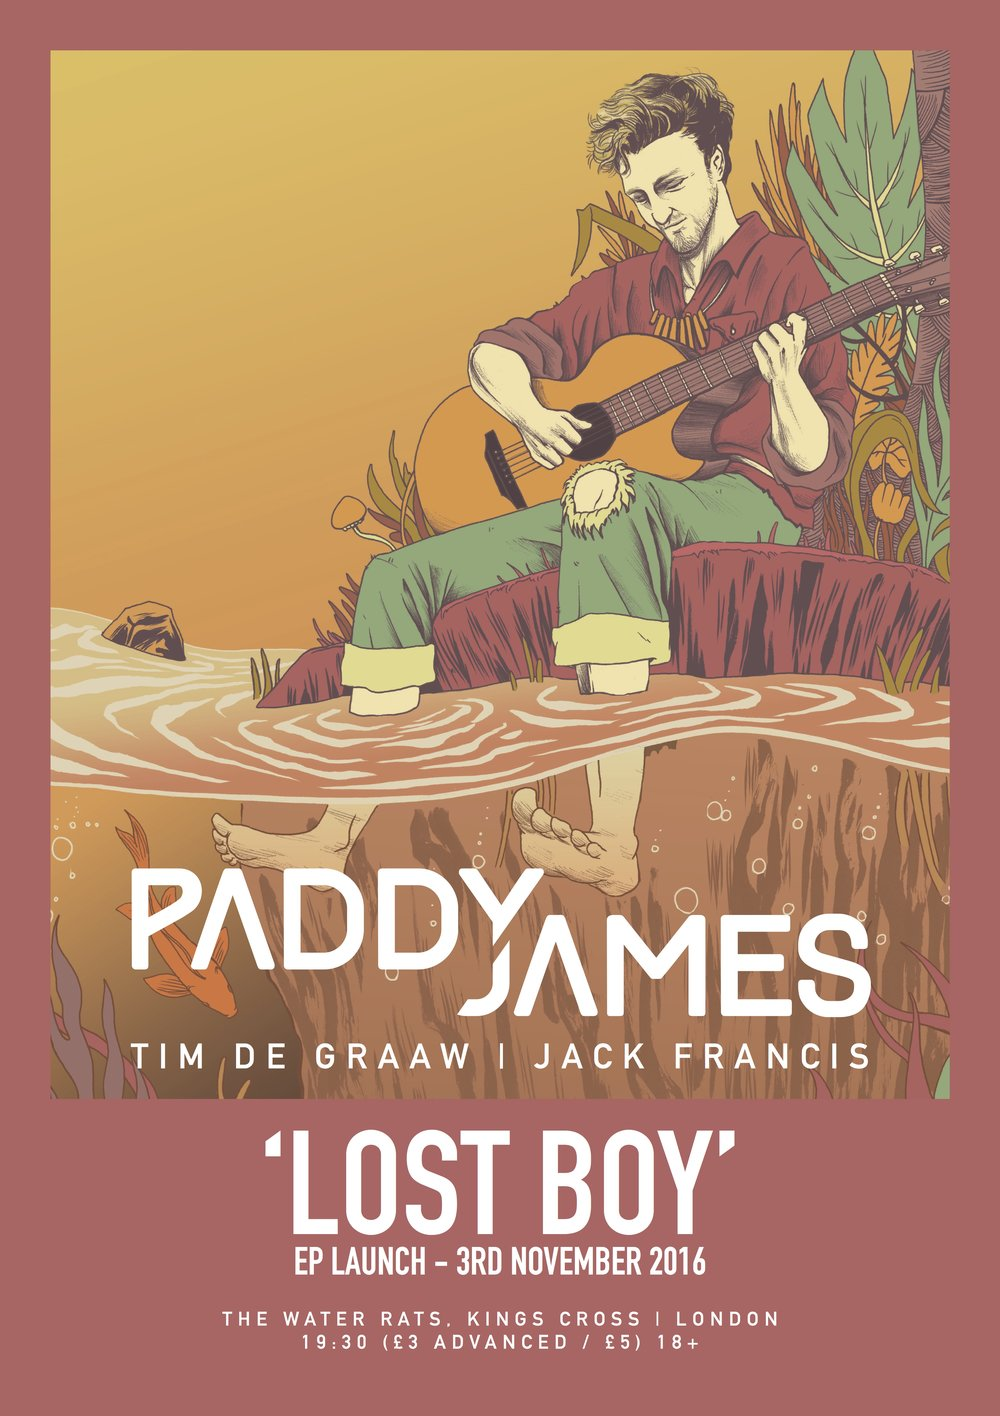 Paddy James EP Launch Poster.jpg